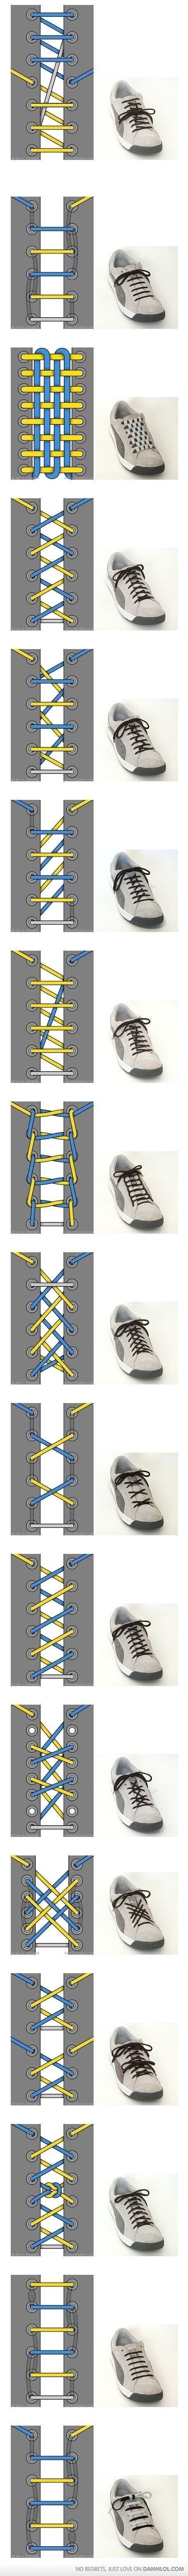 Shoe lace patterns: Ties Shoes, Idea, Style, Clothing, Shoes Lace, Lace Shoes, Kids, Things, Who Knew